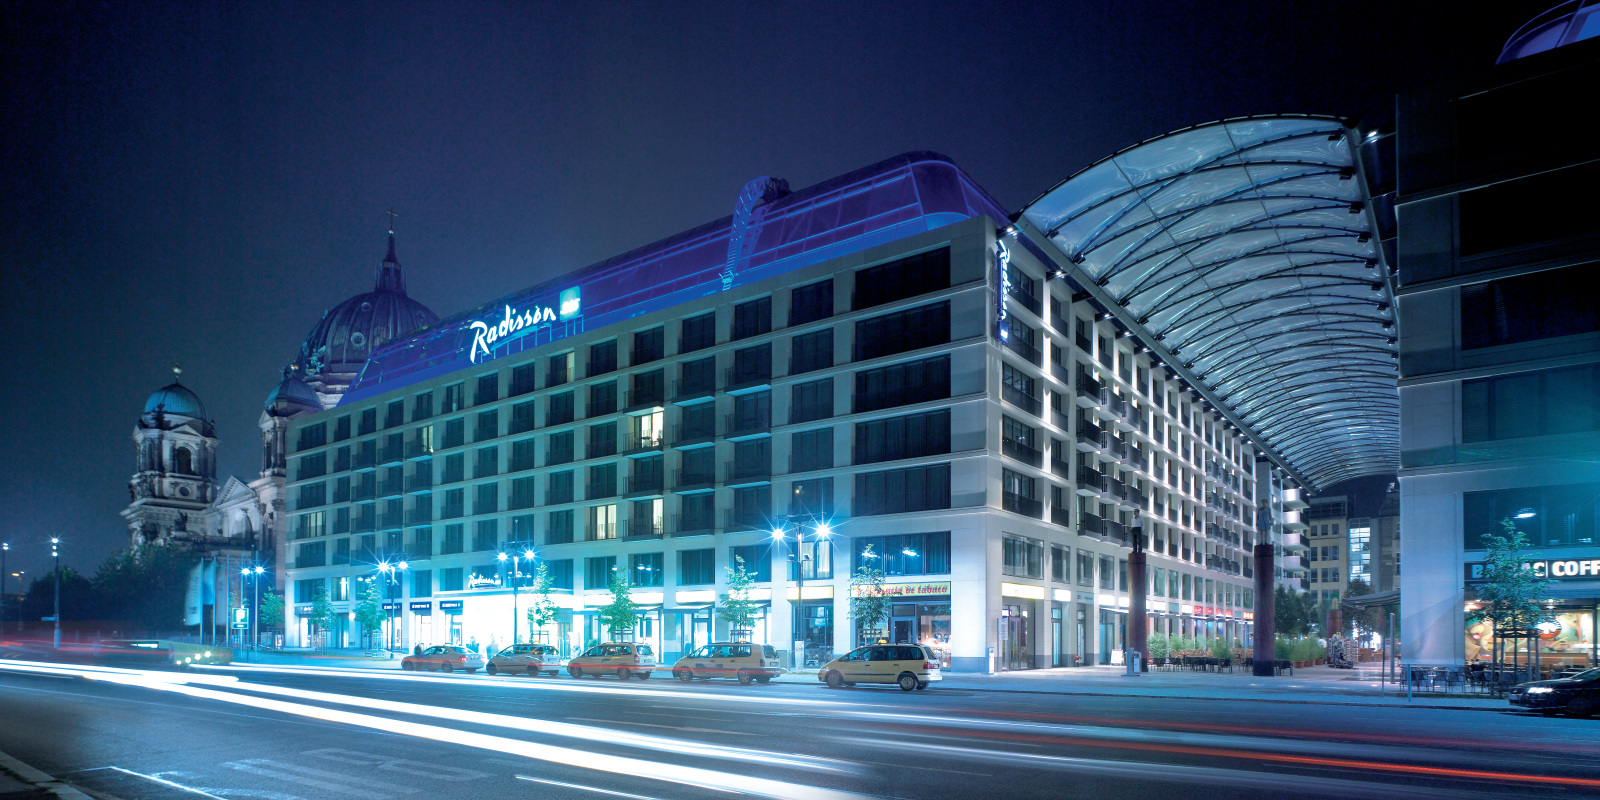 Hotel Radisson at night